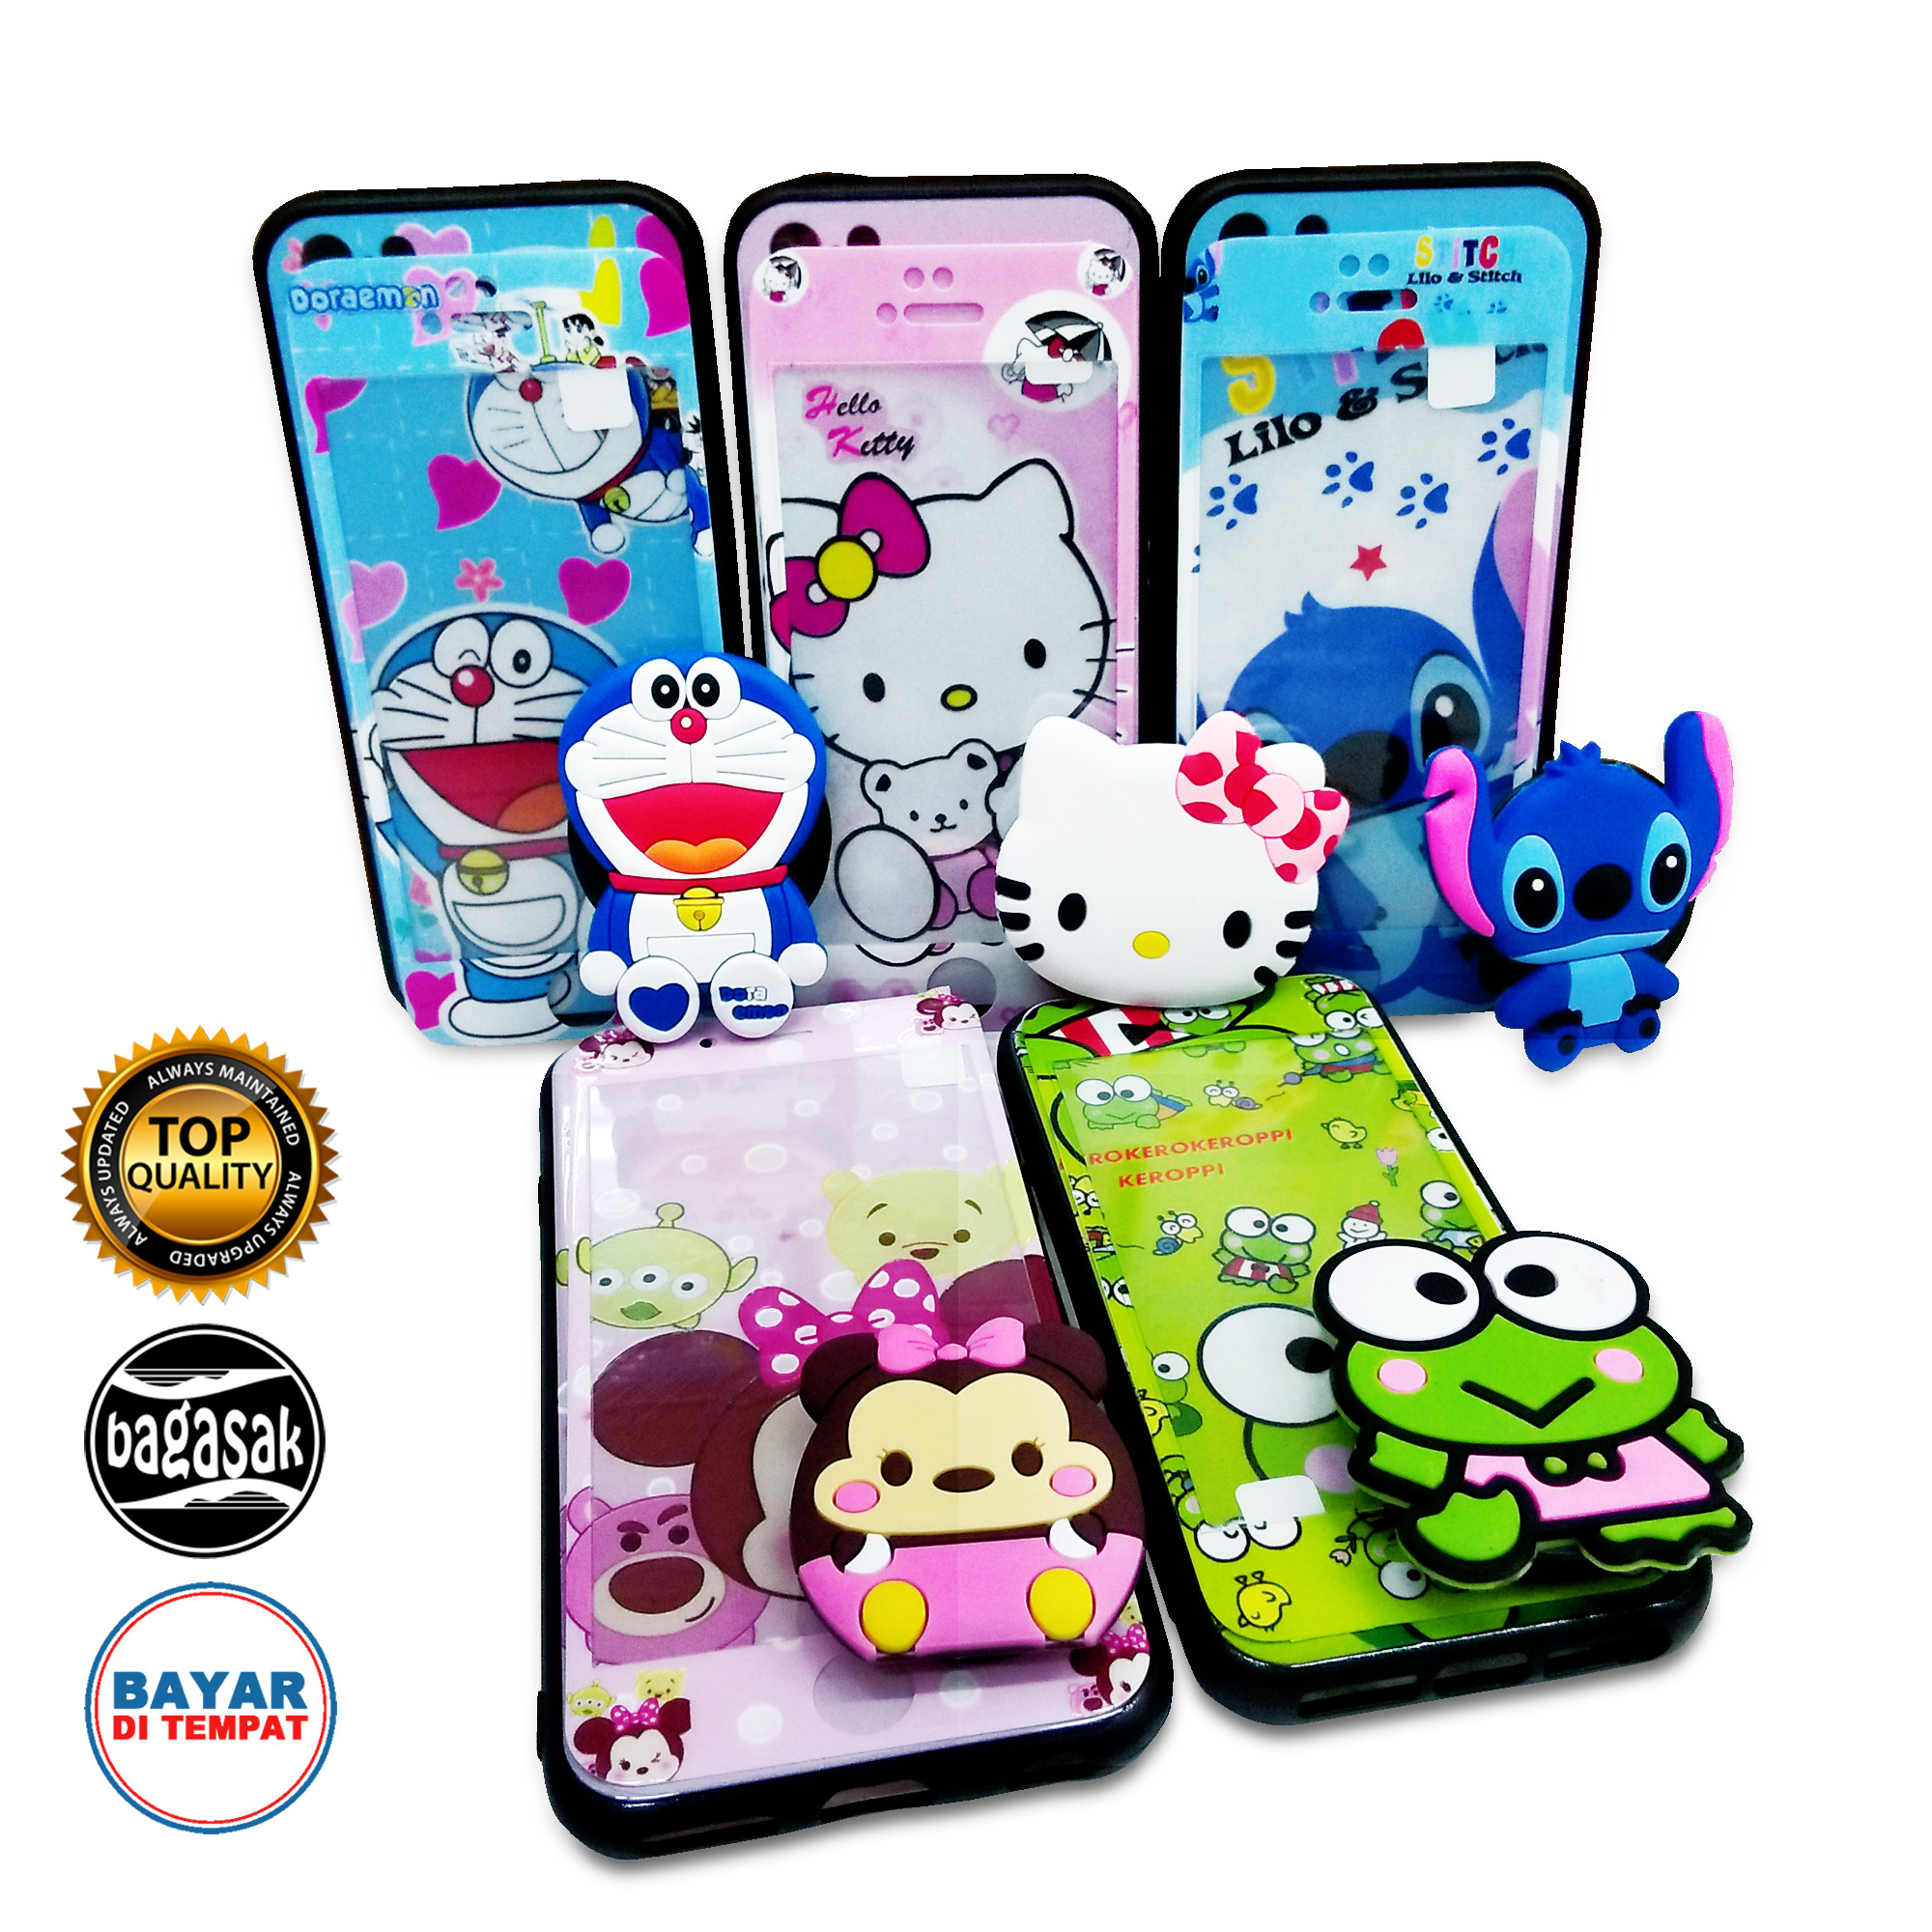 Case Case Karakter Kartun Lucu Temperes Glass Popsocket For Xiaomi Redmi 6A B